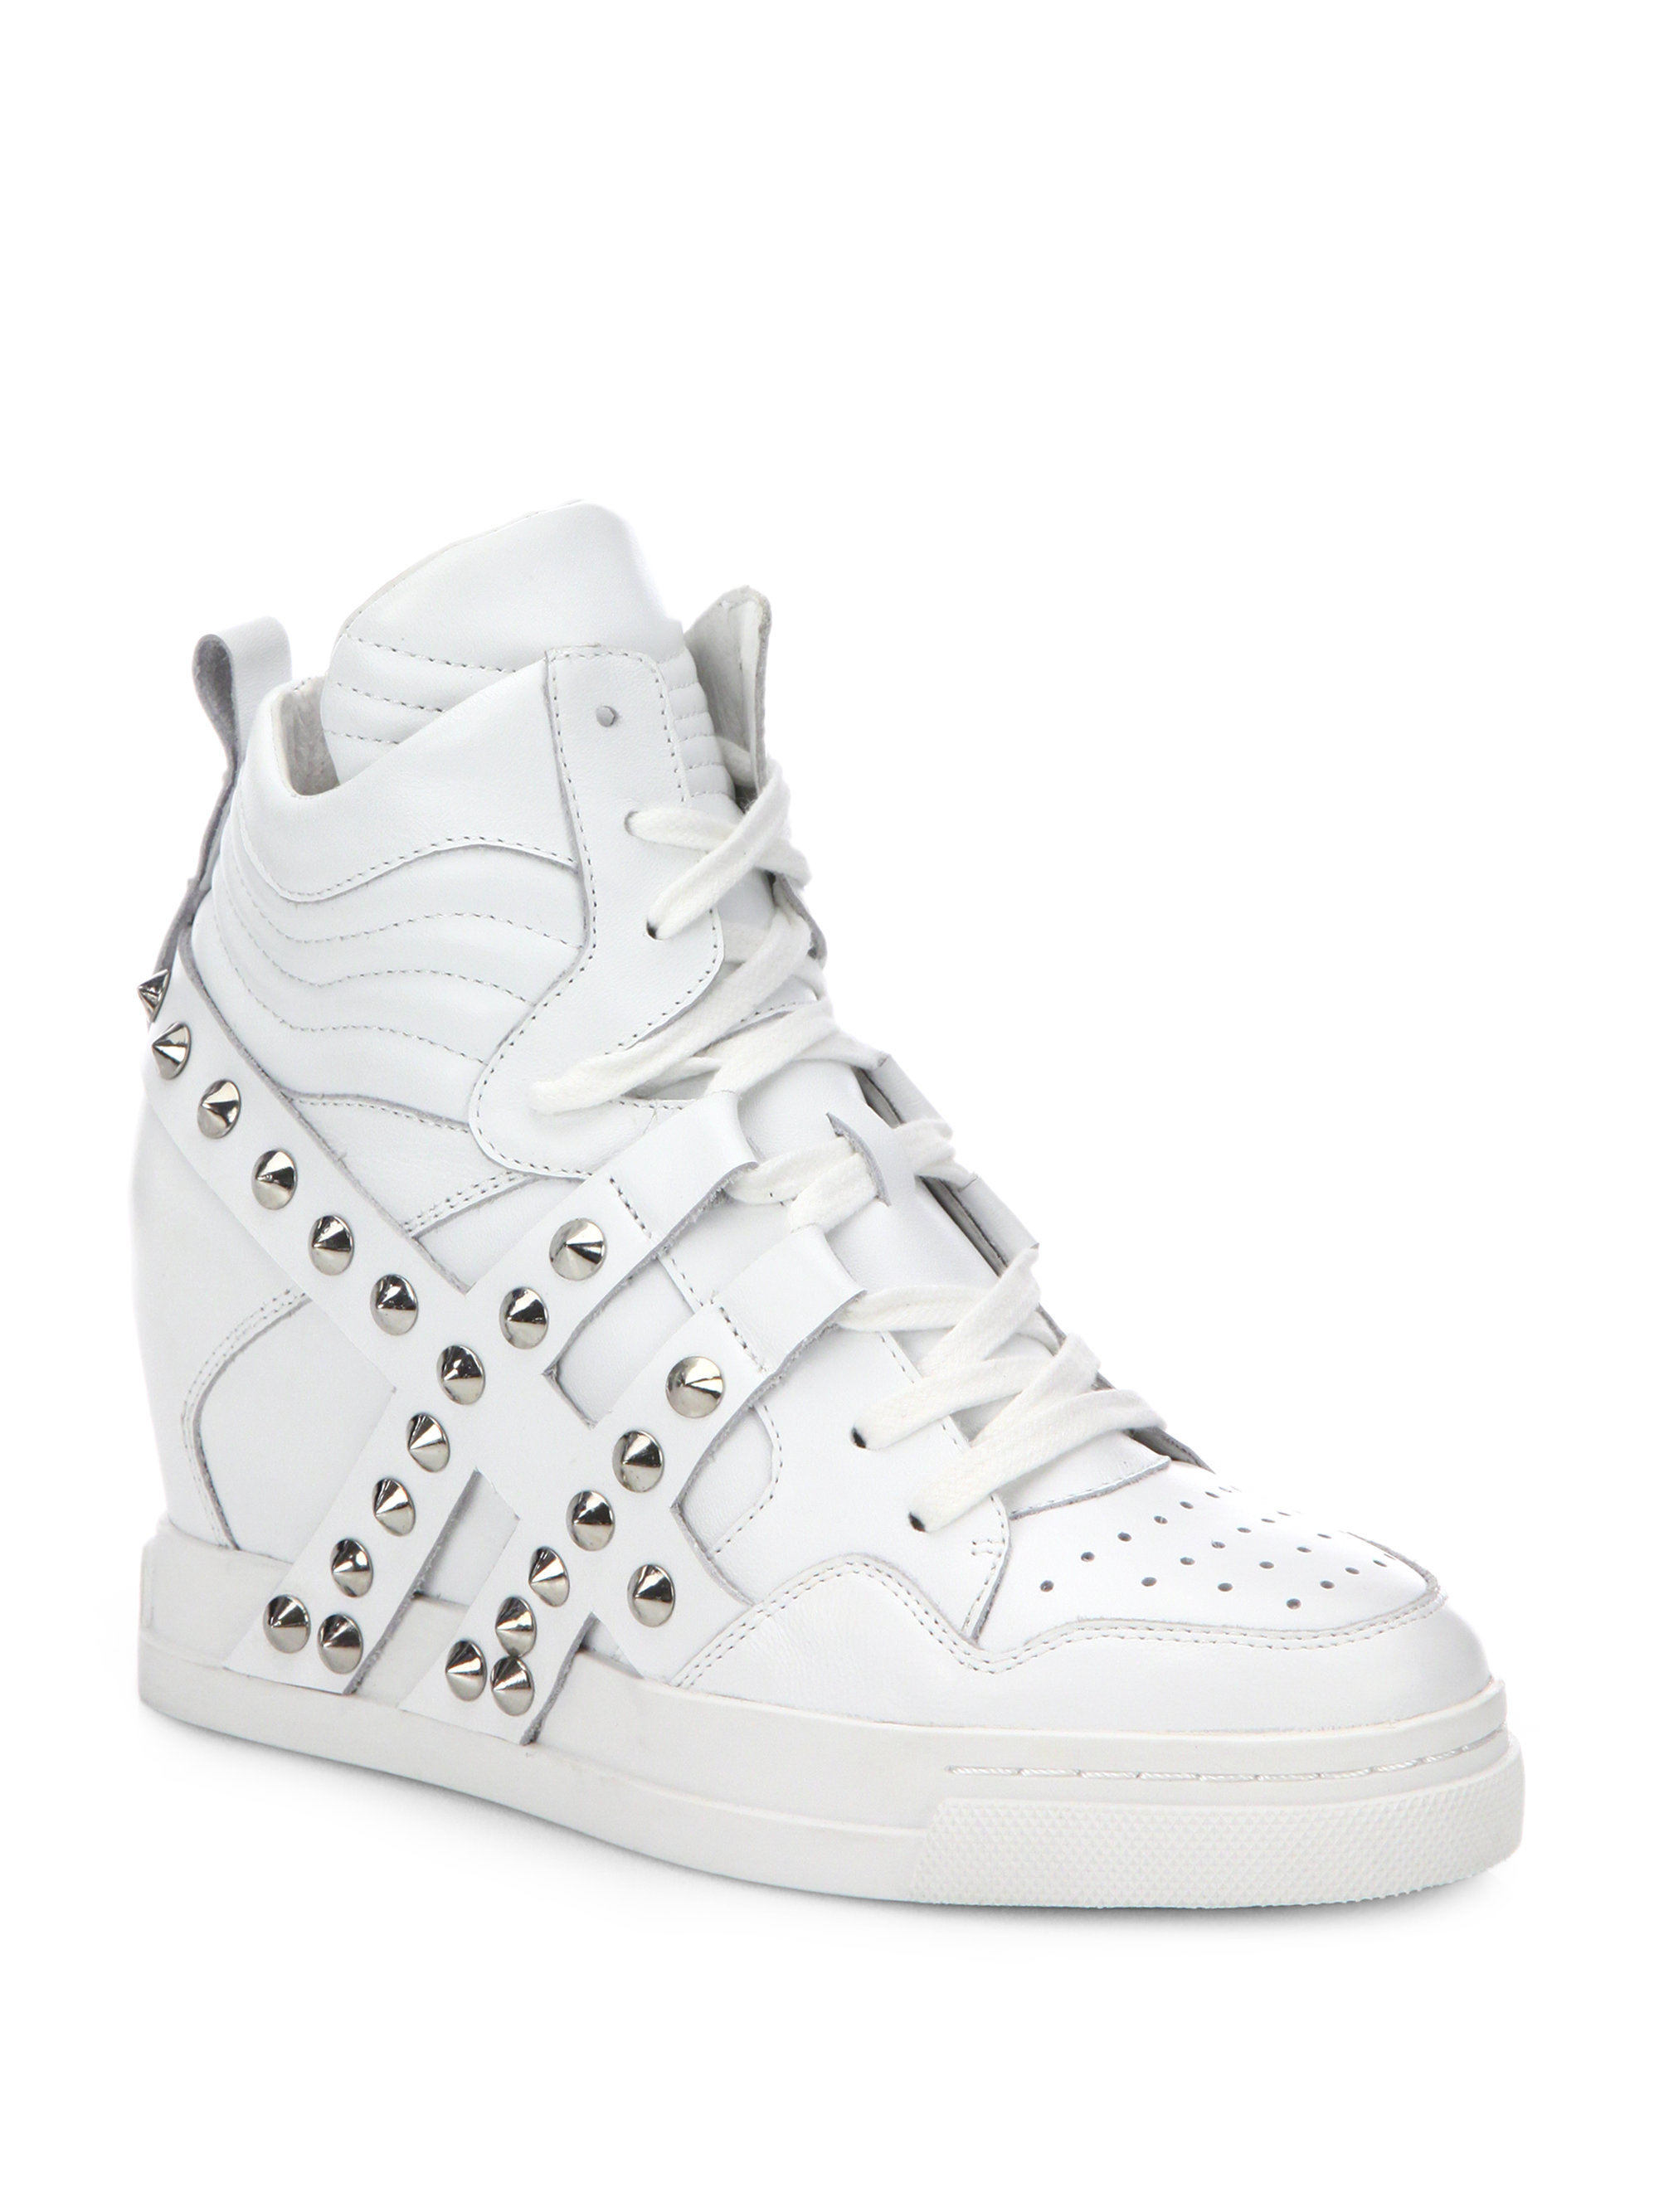 You searched for: studded converse! Etsy is the home to thousands of handmade, vintage, and one-of-a-kind products and gifts related to your search. No matter what you're looking for or where you are in the world, our global marketplace of sellers can help you find unique and affordable options. Let's get started!